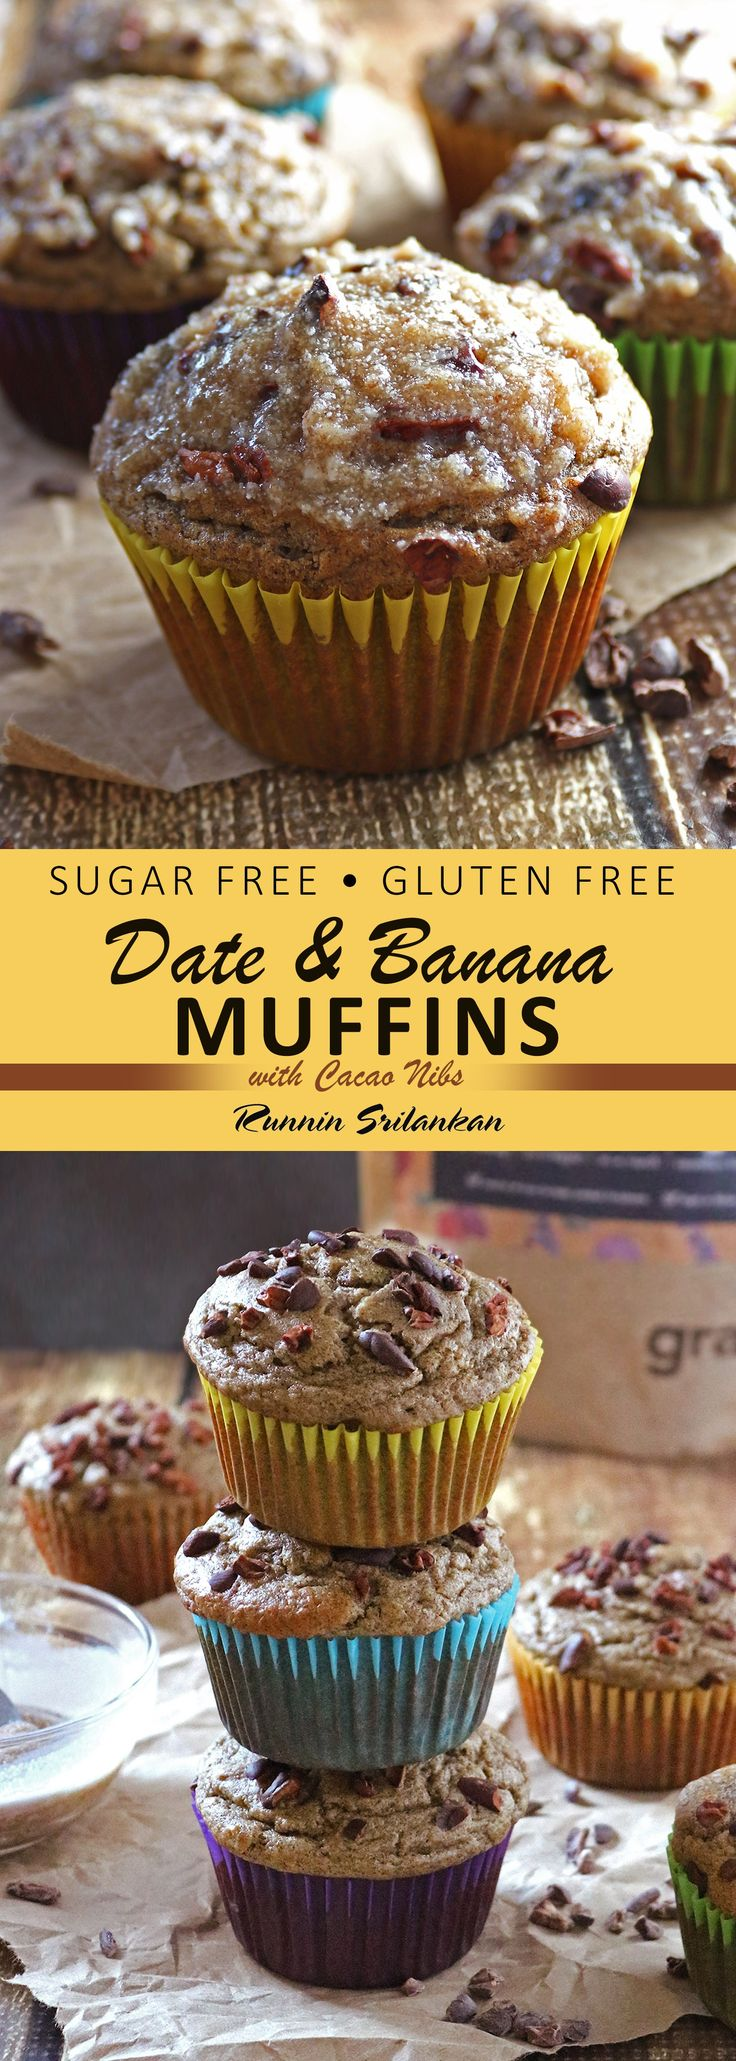 These Date Banana Muffins with Cacao Nibs are refined sugar-free, gluten-free and dairy-free AND taste-full!